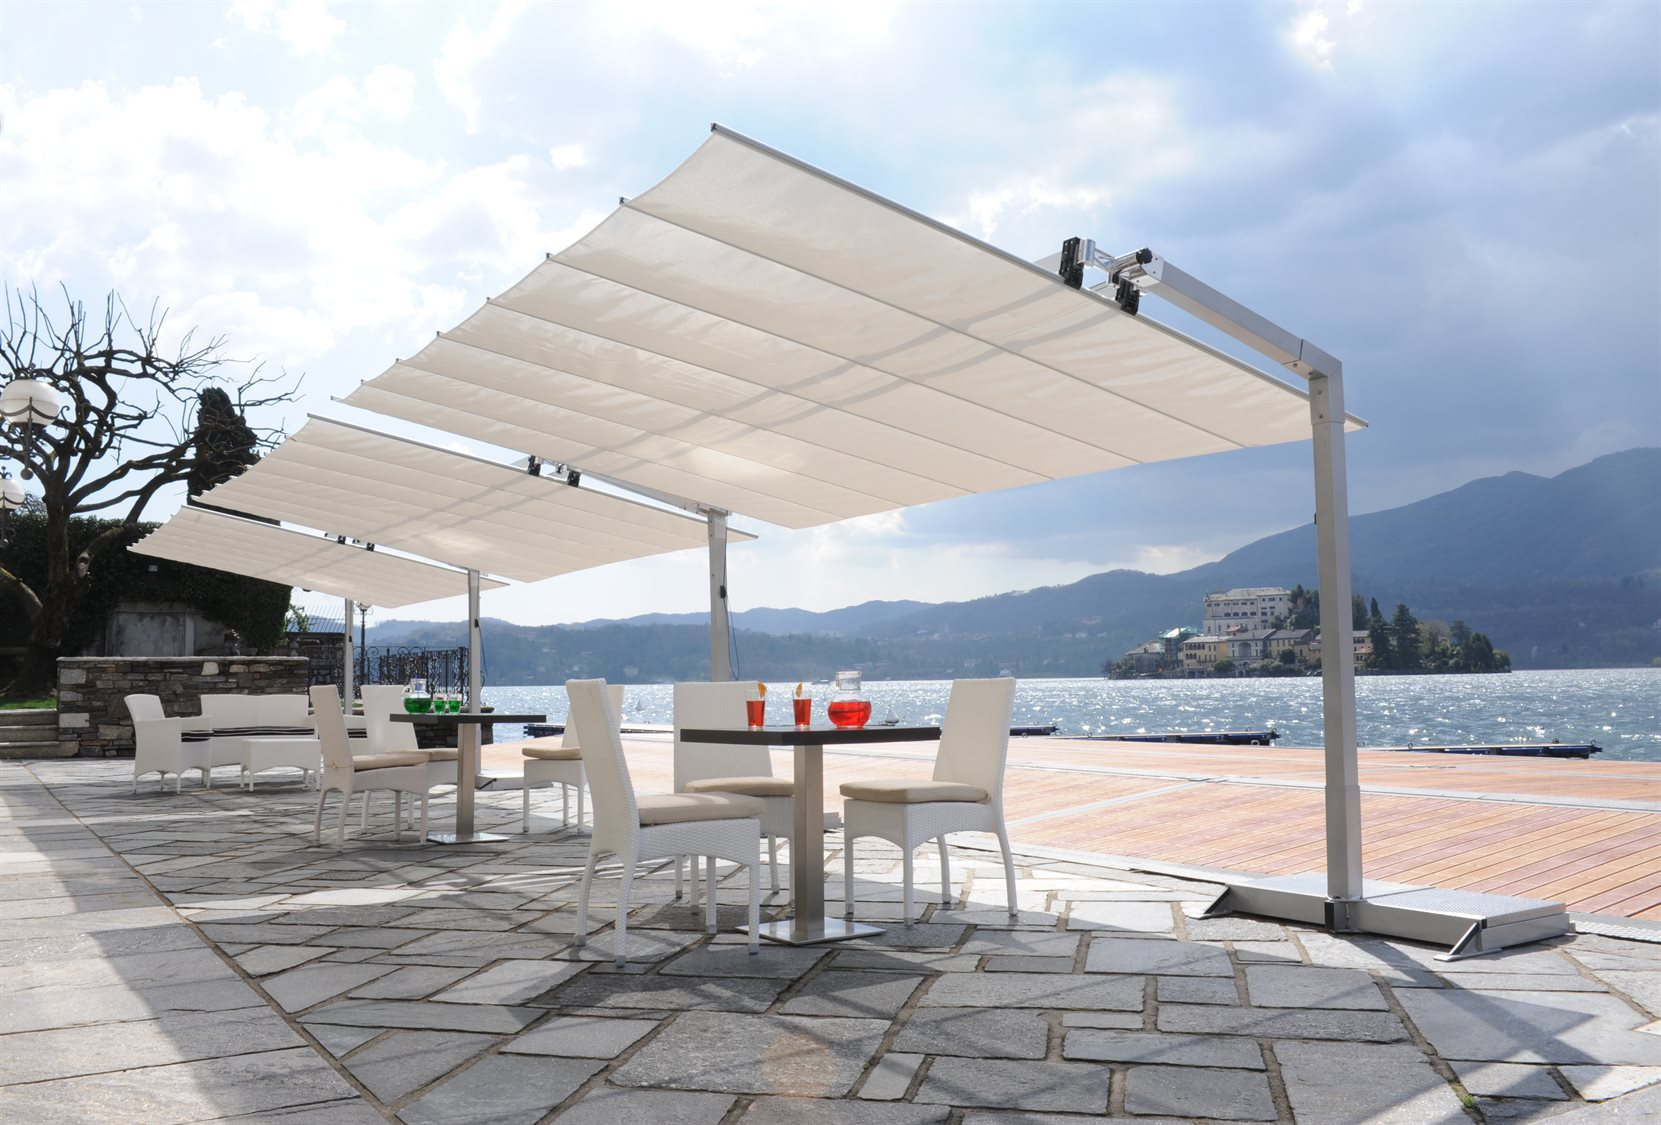 Fim flexy aluminum 8 39 x 12 39 rectangular offset umbrella for Sun shade structure